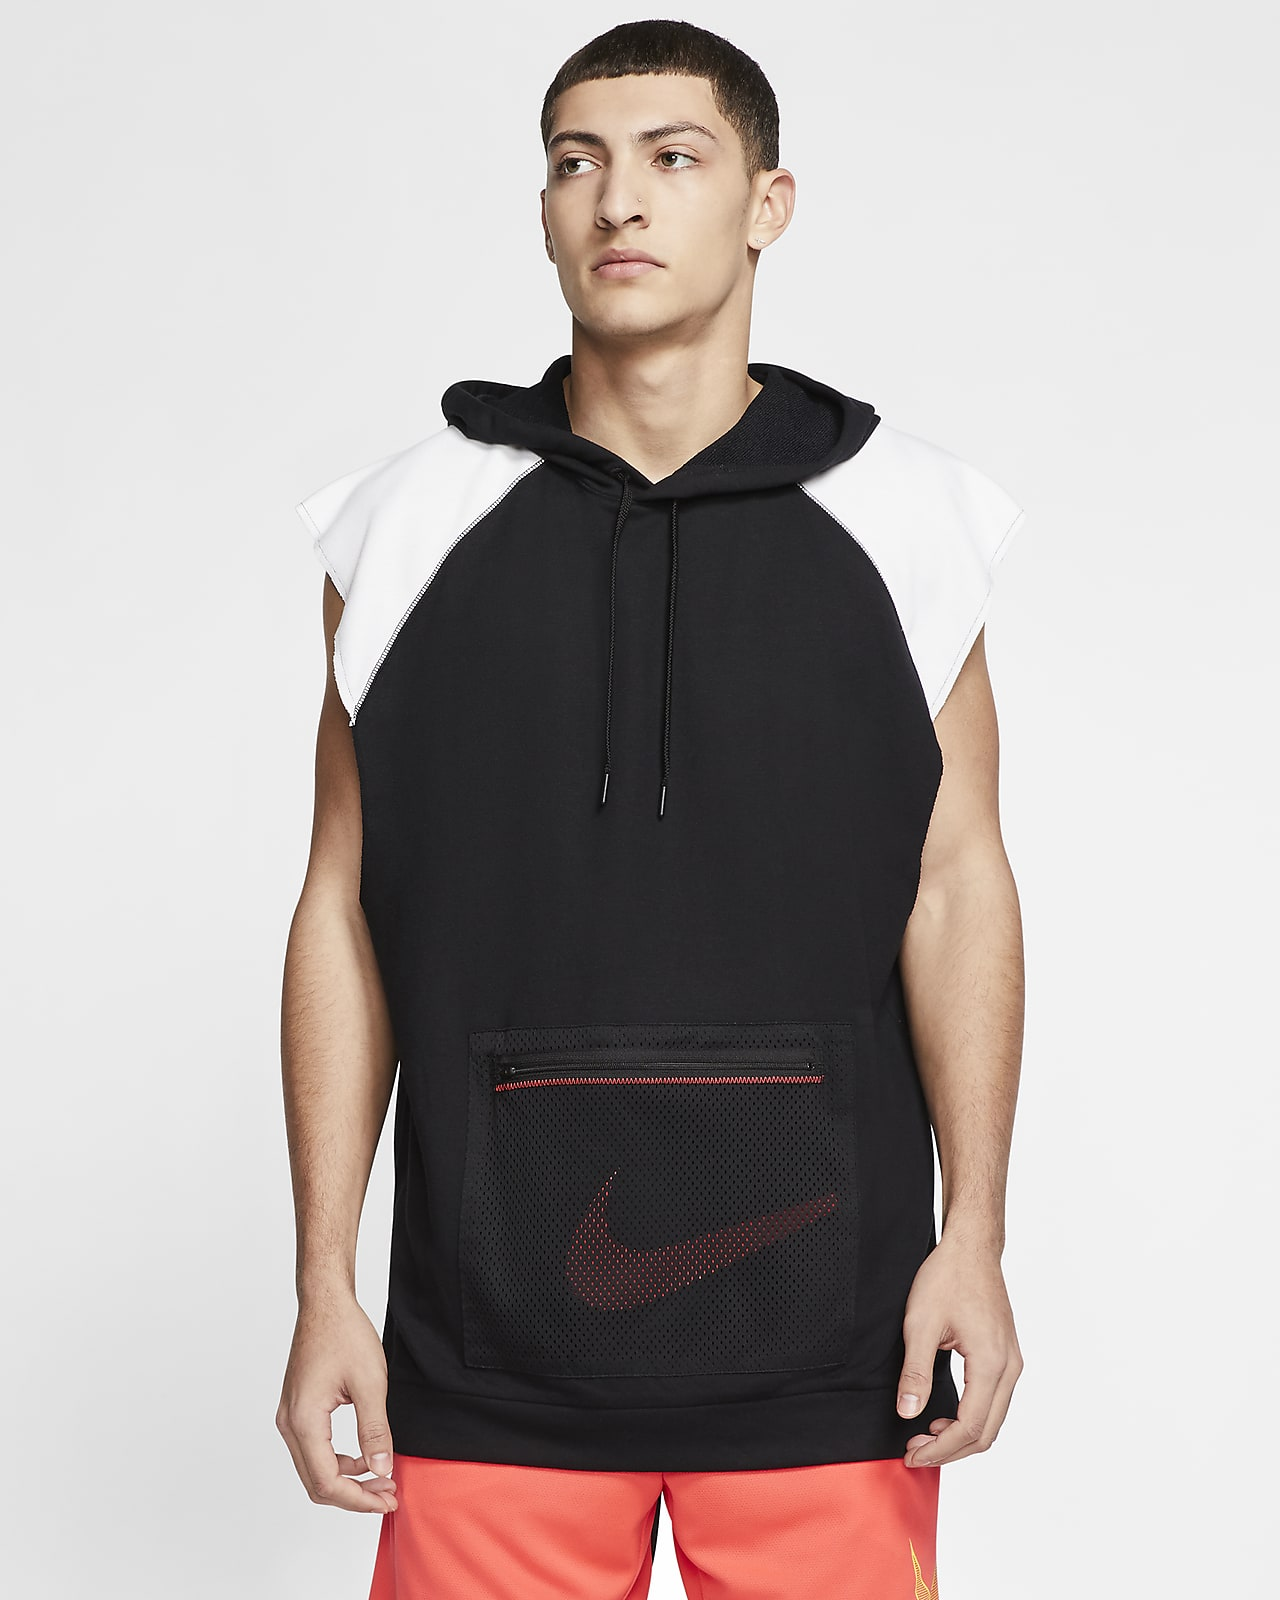 Nike Dri-FIT Men's Sleeveless Fleece Training Hoodie